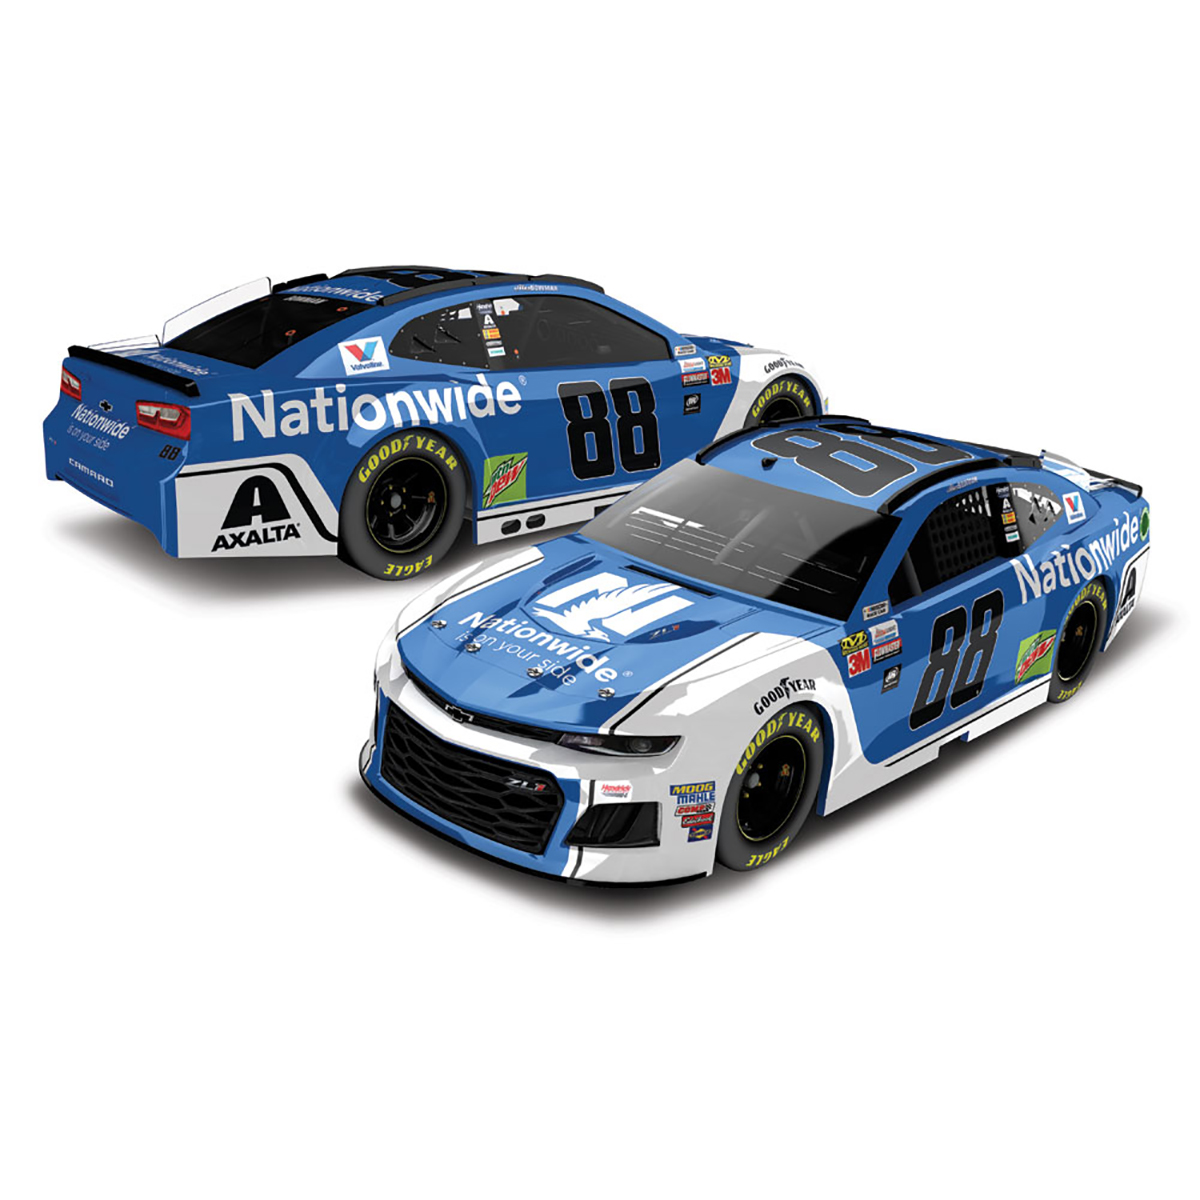 Alex Bowman 2018 NASCAR Cup Series No. 88 Nationwide 1:64 Die-Cast